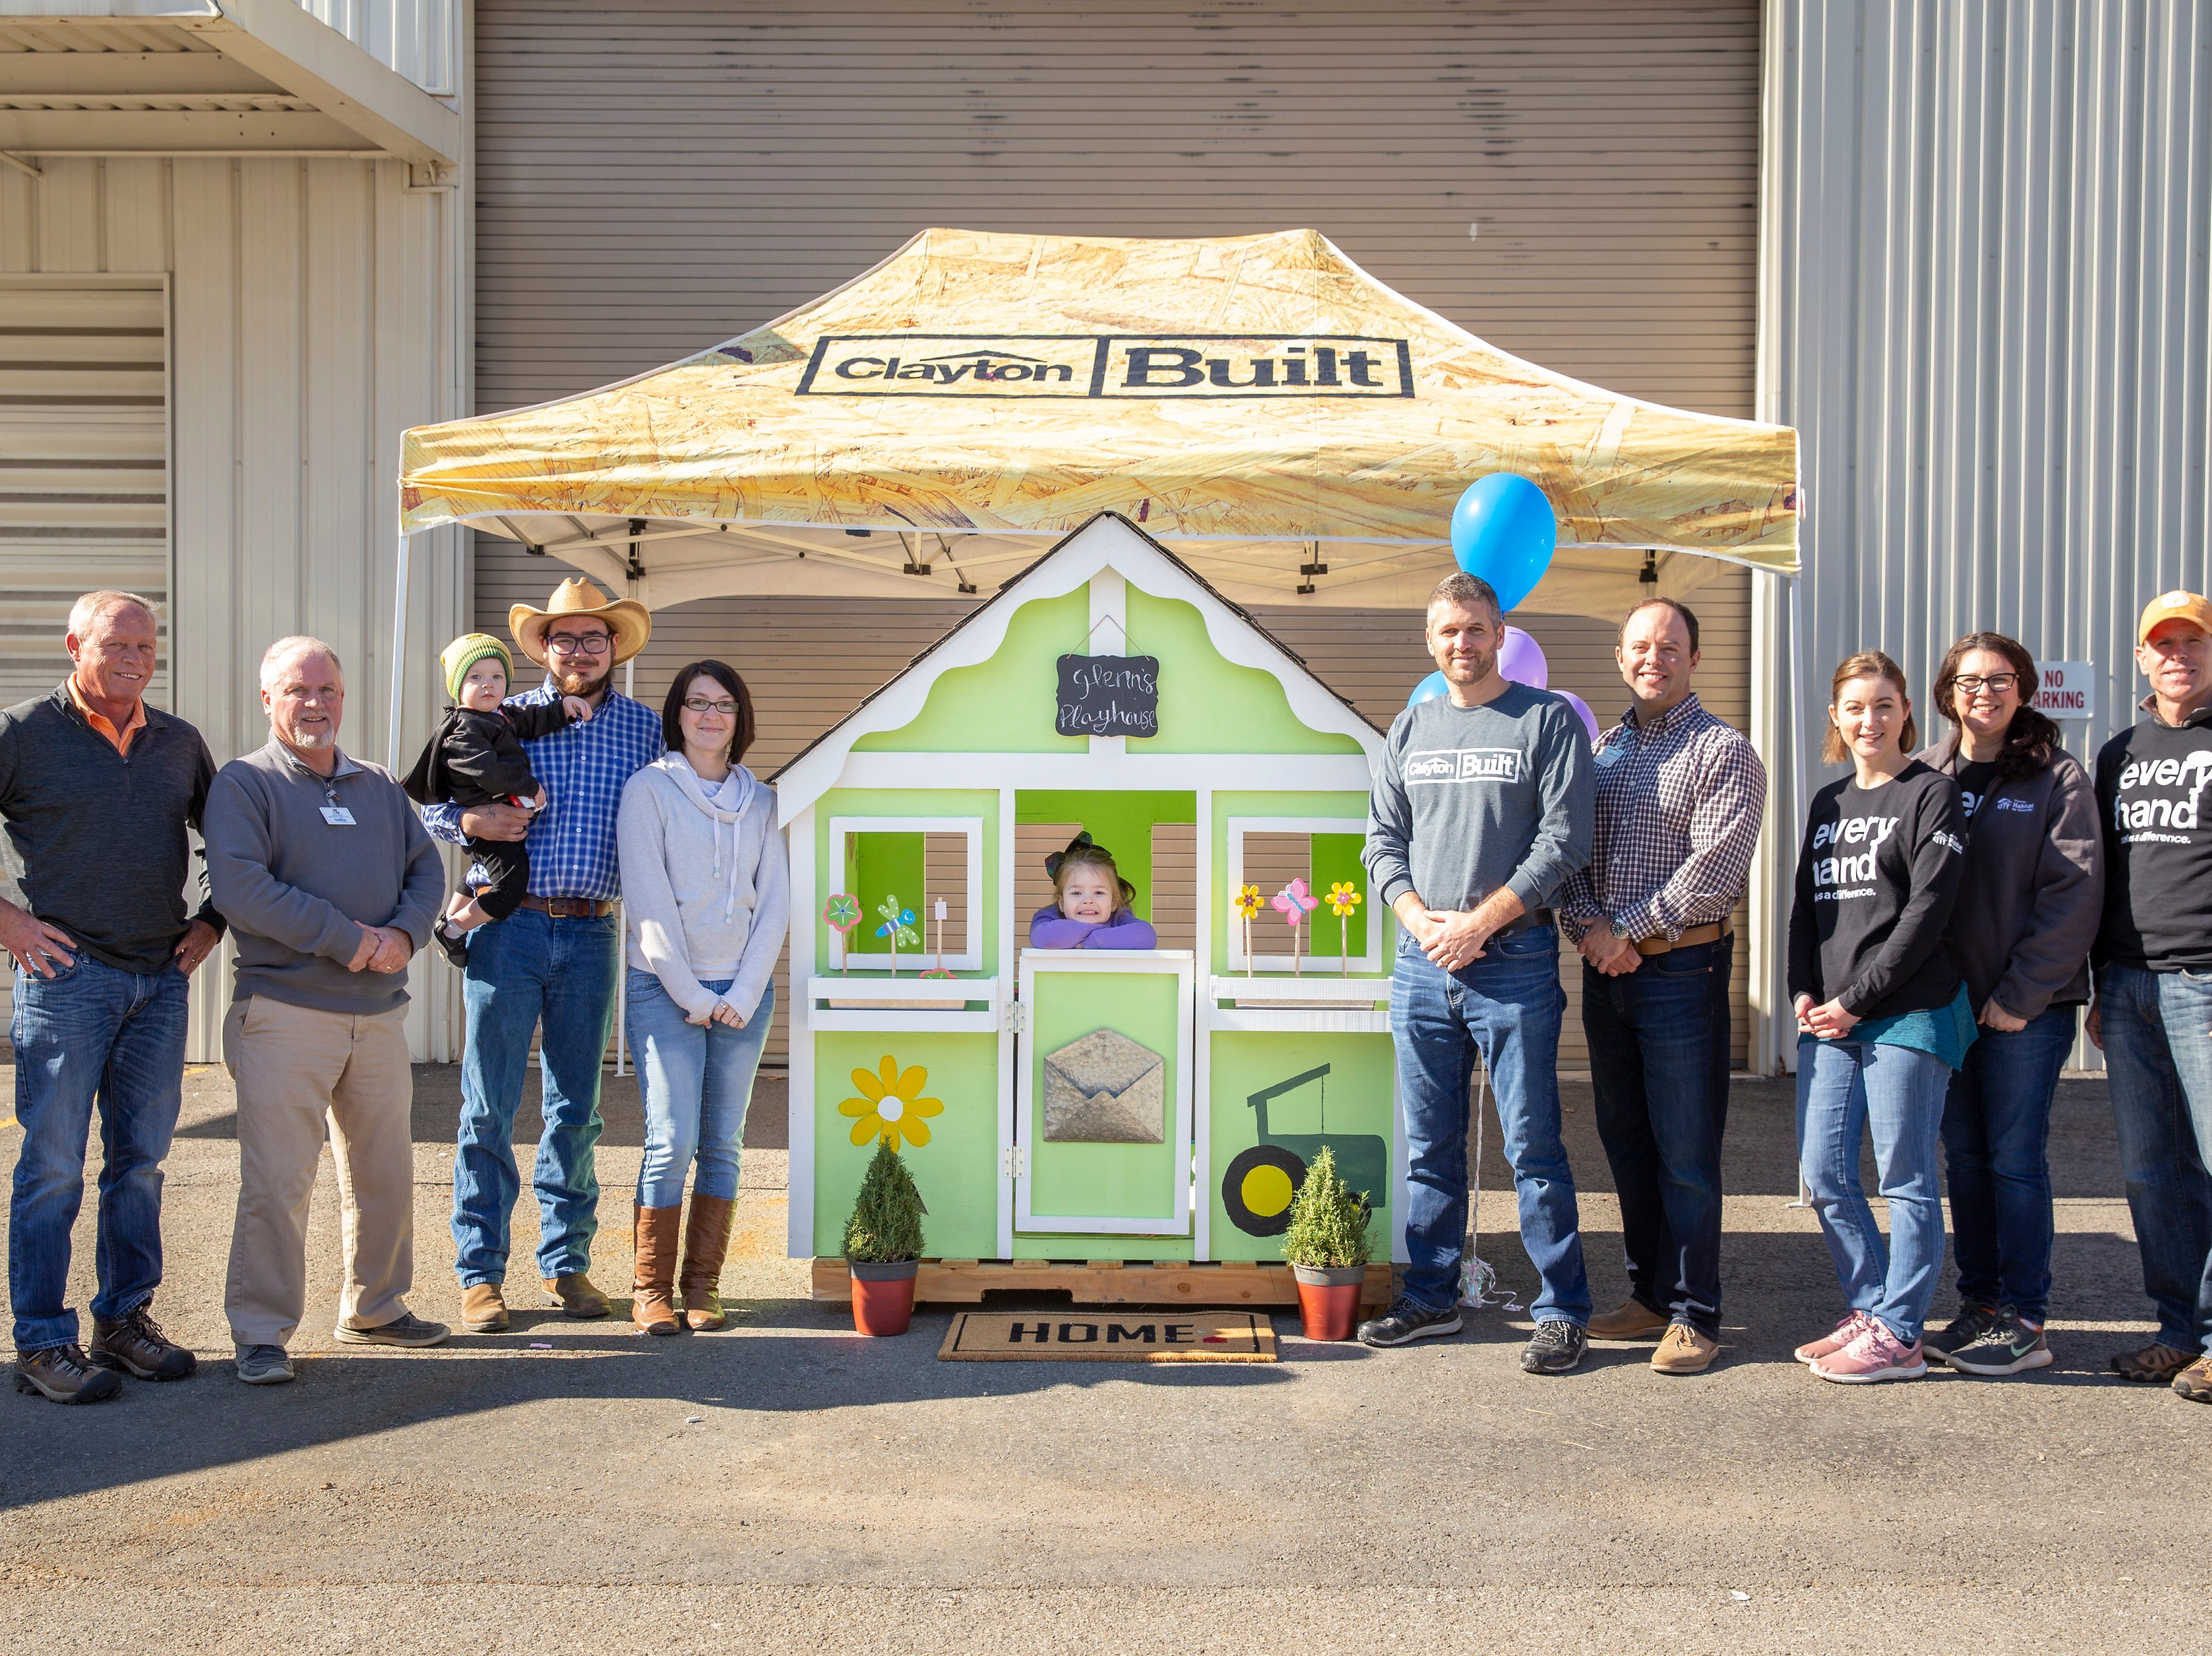 Michael and Amanda Glenn (center left), with their son, Zayne, and daughter, Sky, after they were presented with a playhouse at TRU Homes in Halls.